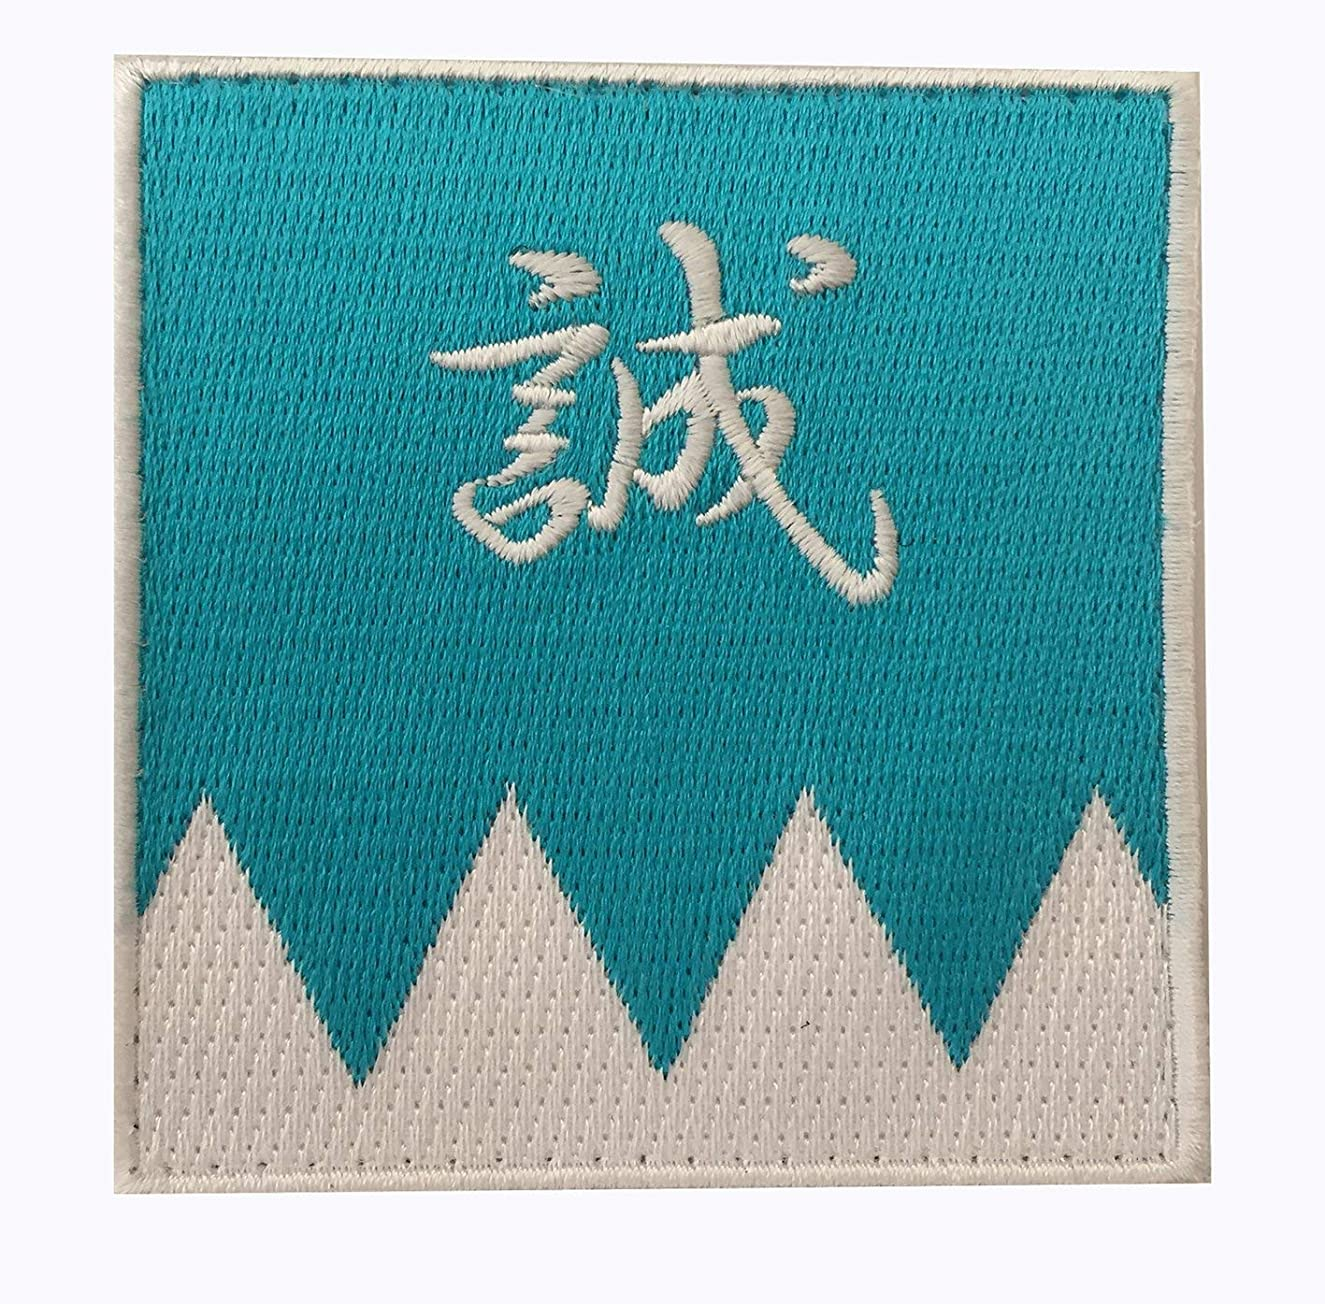 [Japan Import] 100% Embroidery Verclo Patches Shinsengumi Flag A0006